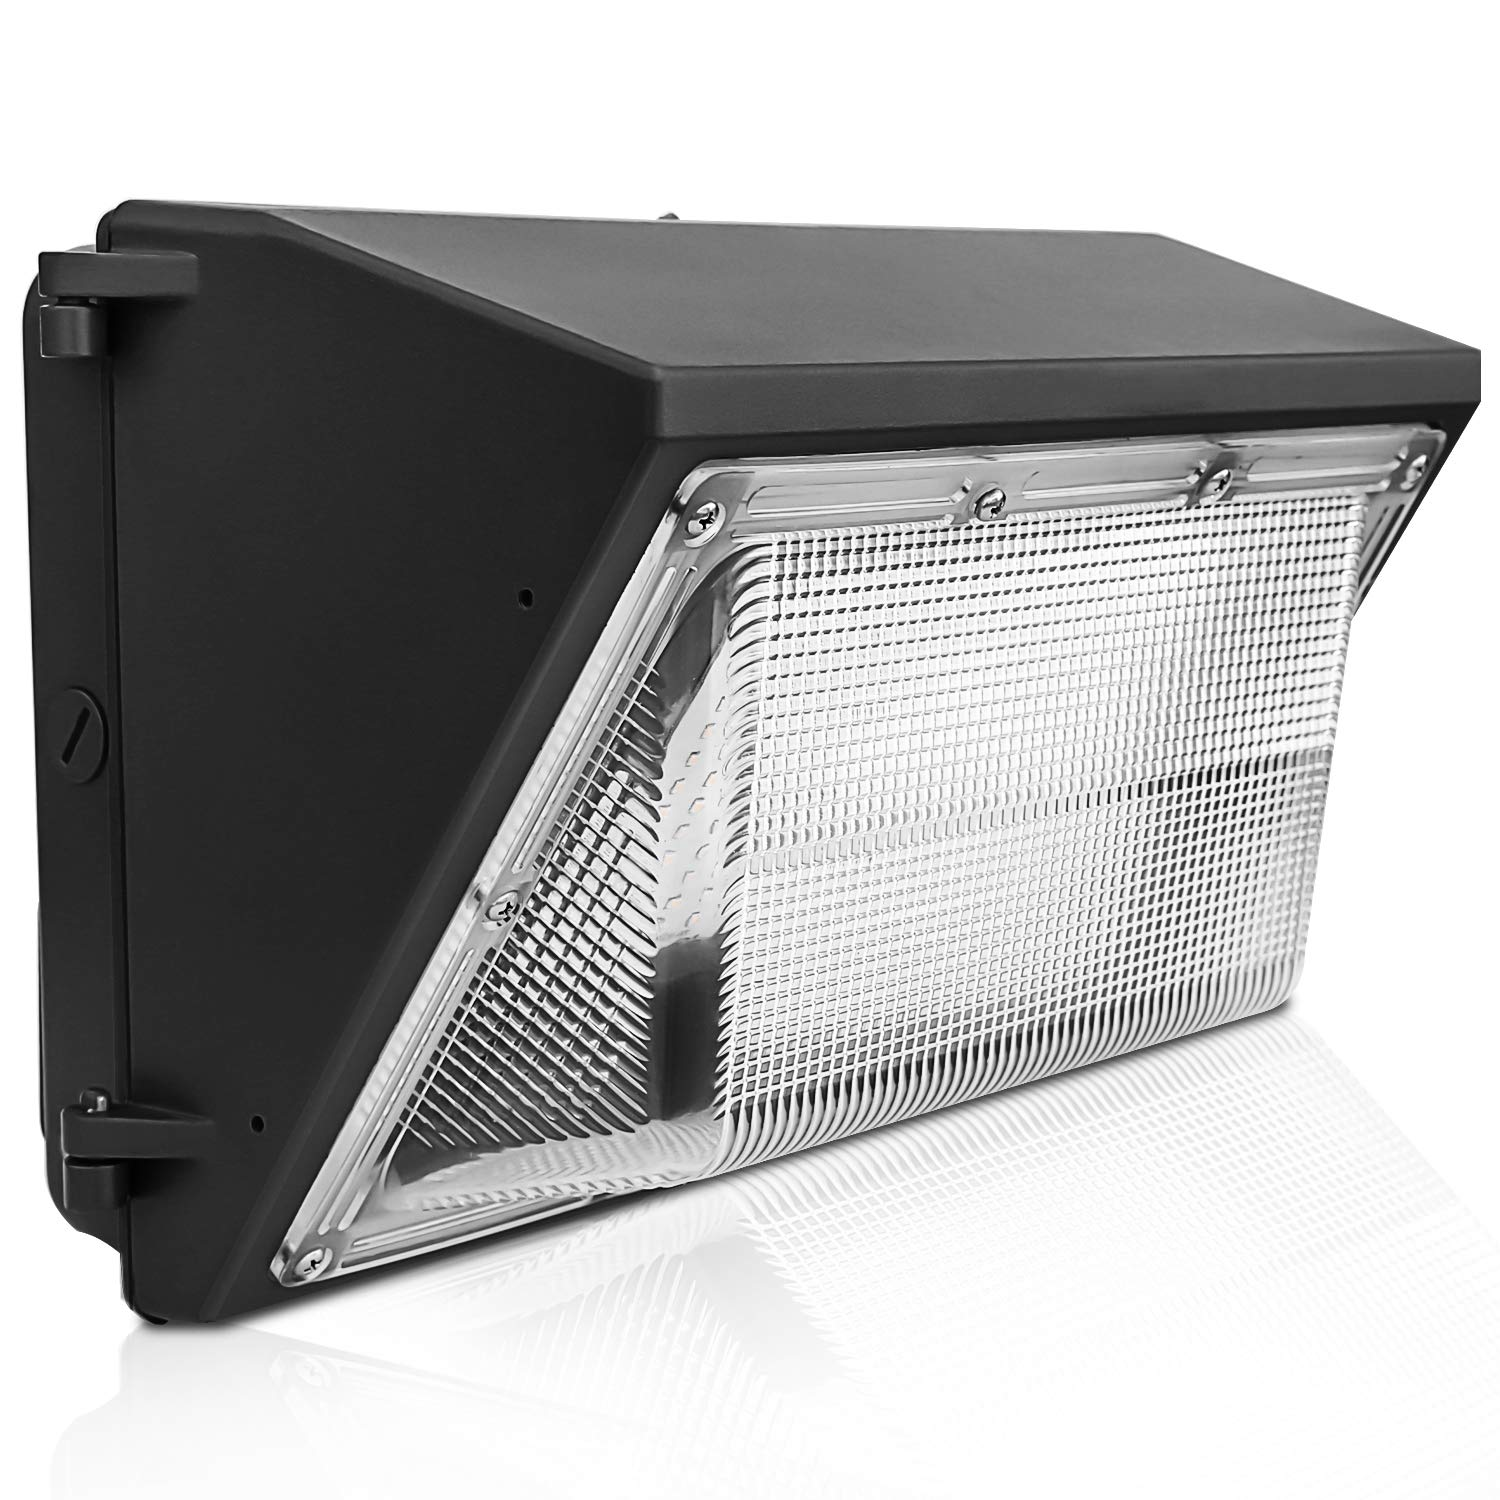 LED Wall Pack Light 120W - Outdoor Wall Light 840W HPS/HID Equivalent 5000K 15840Lm LED Flood Light Commercial and Industrial LED Lights for Parking Lots Apartments Warehouses Factories UL&DLC